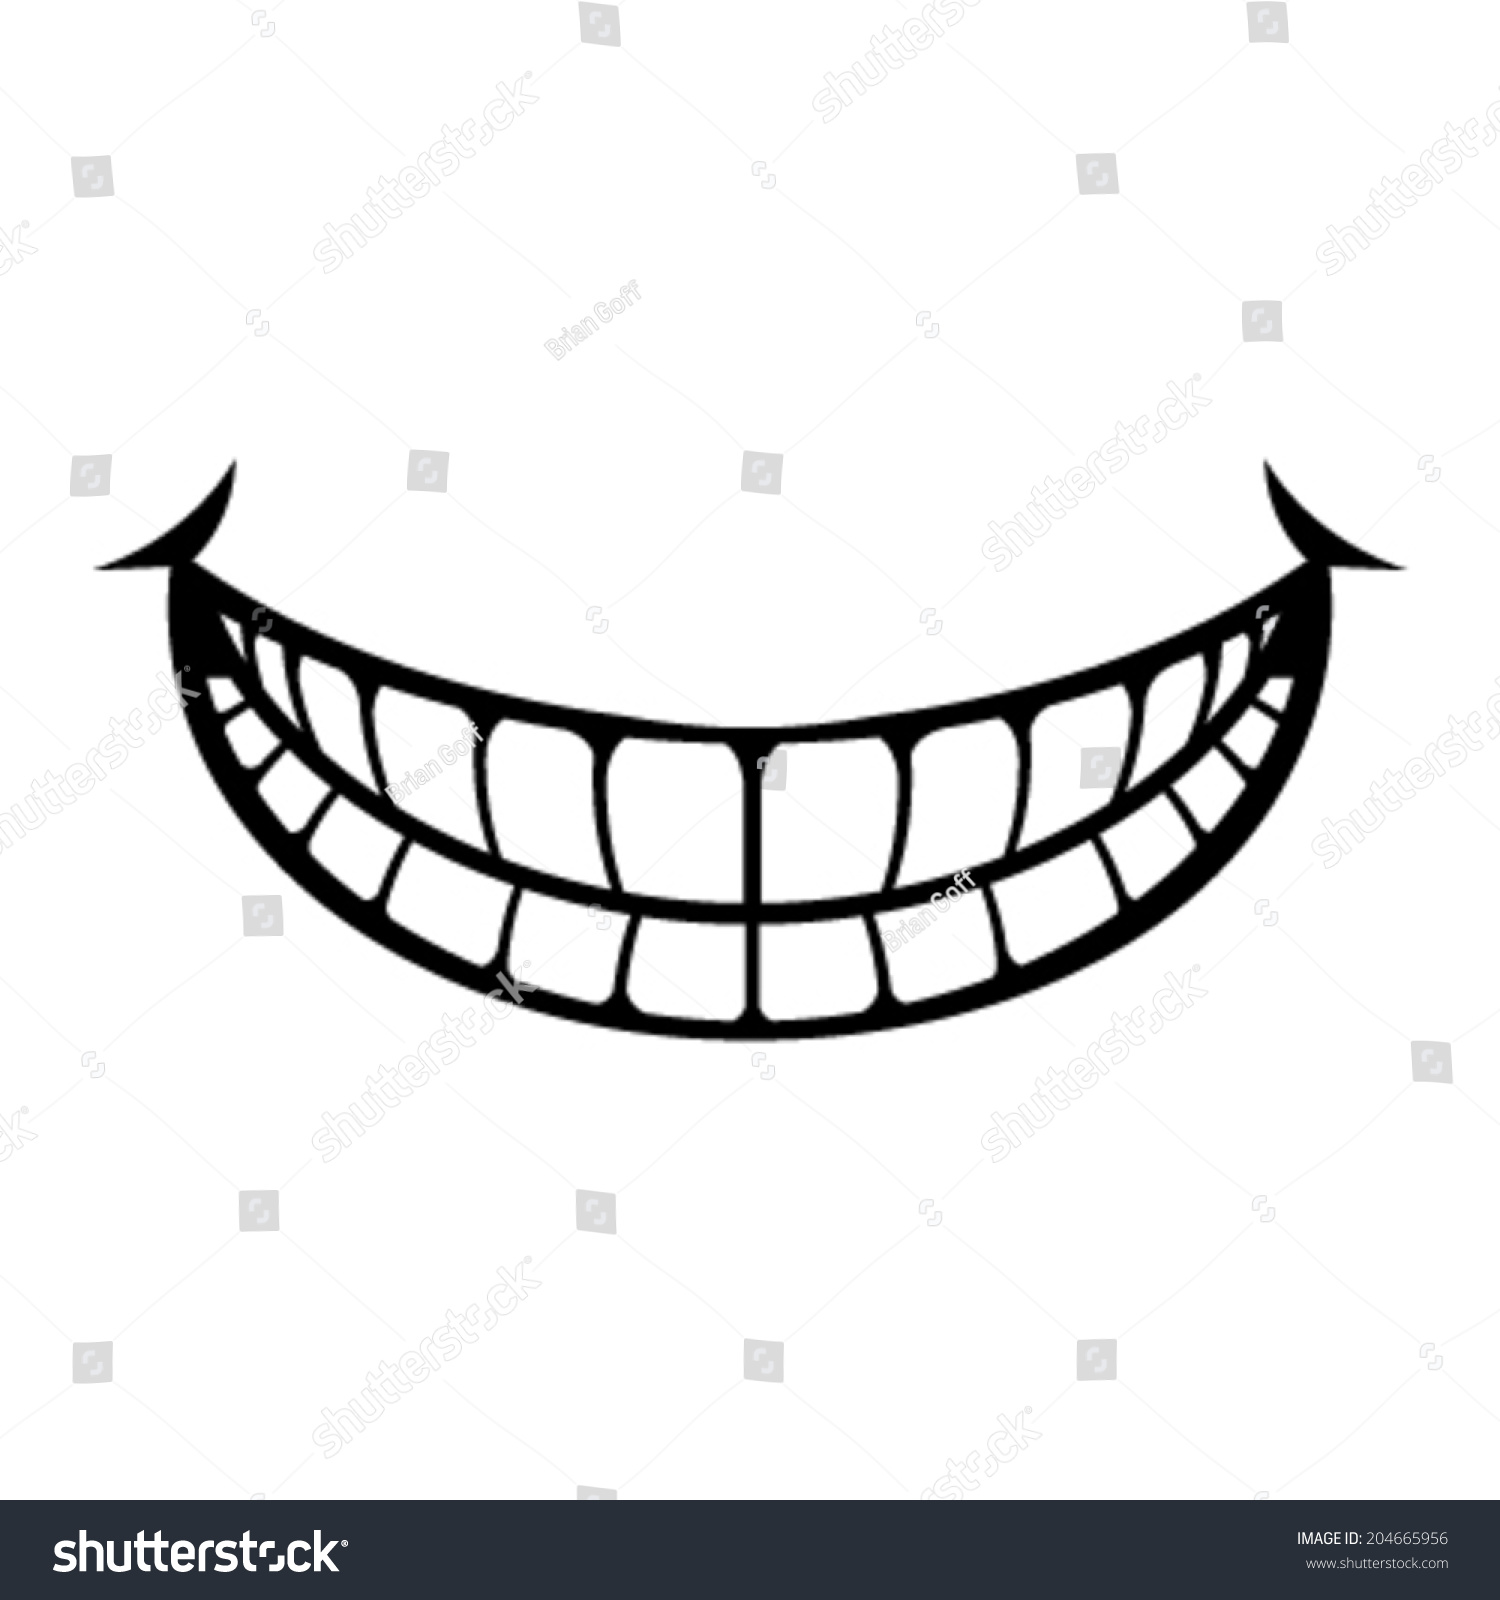 Smile Cartoon Vector Icon Stock Vector 204665956 ...